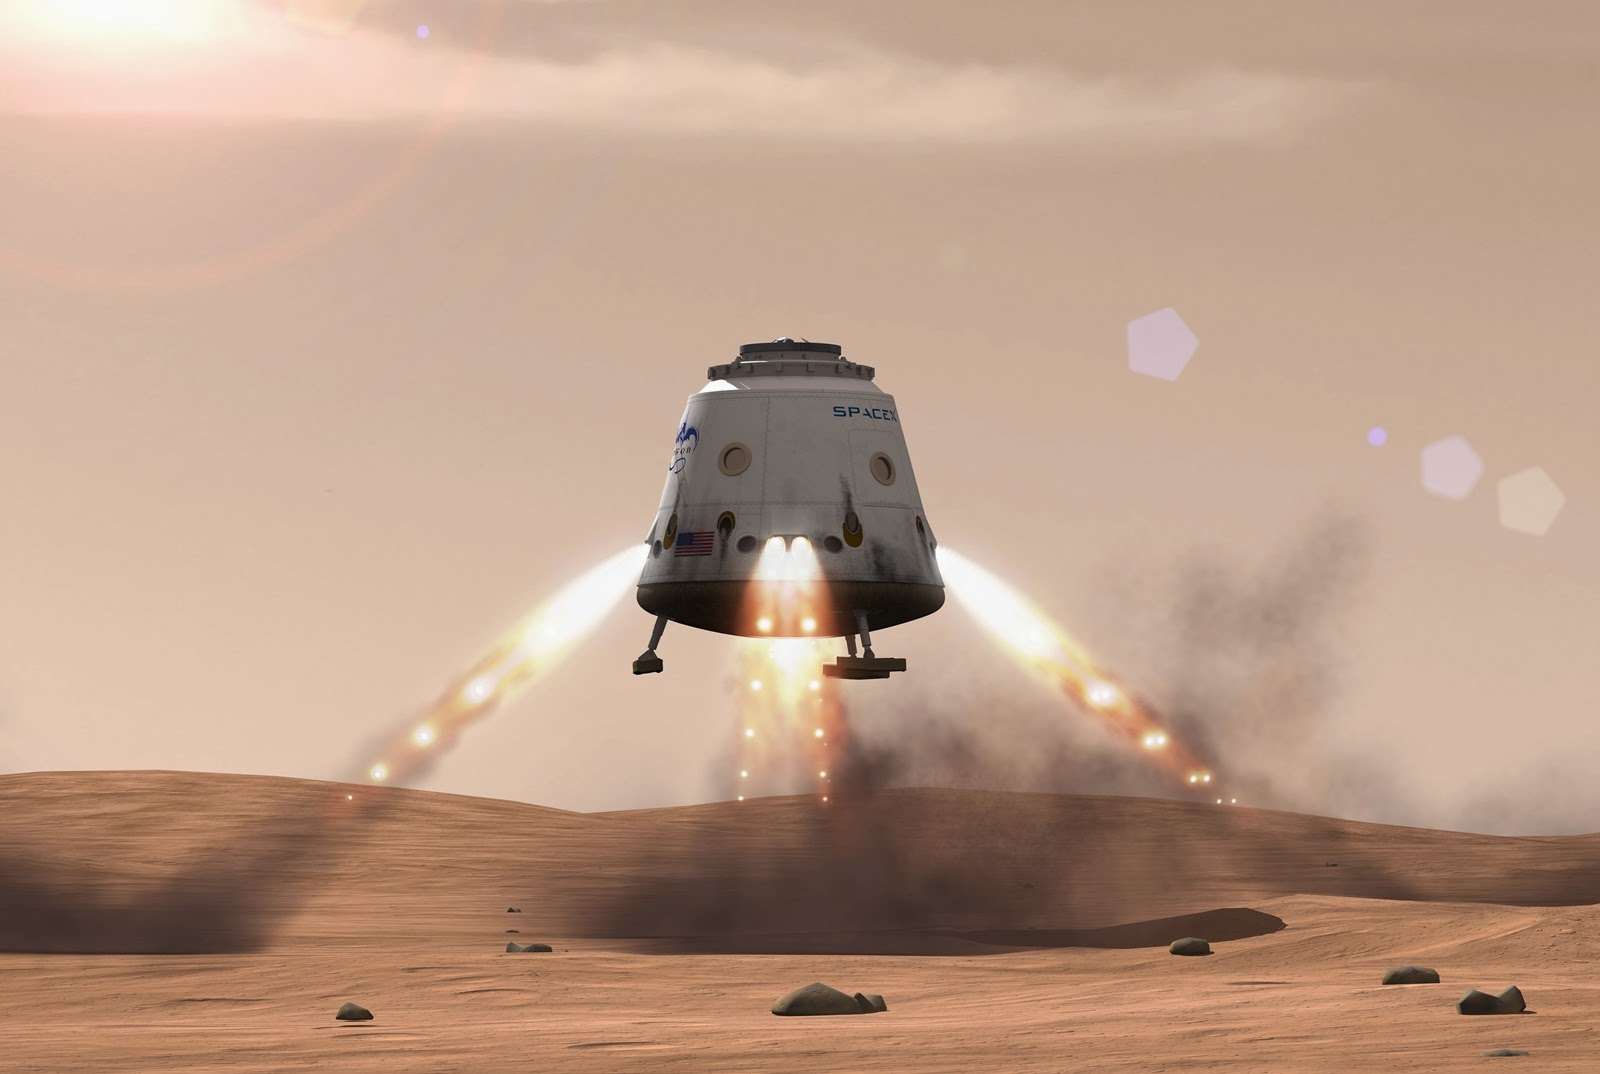 Red Dragon landing on Mars by SpaceX